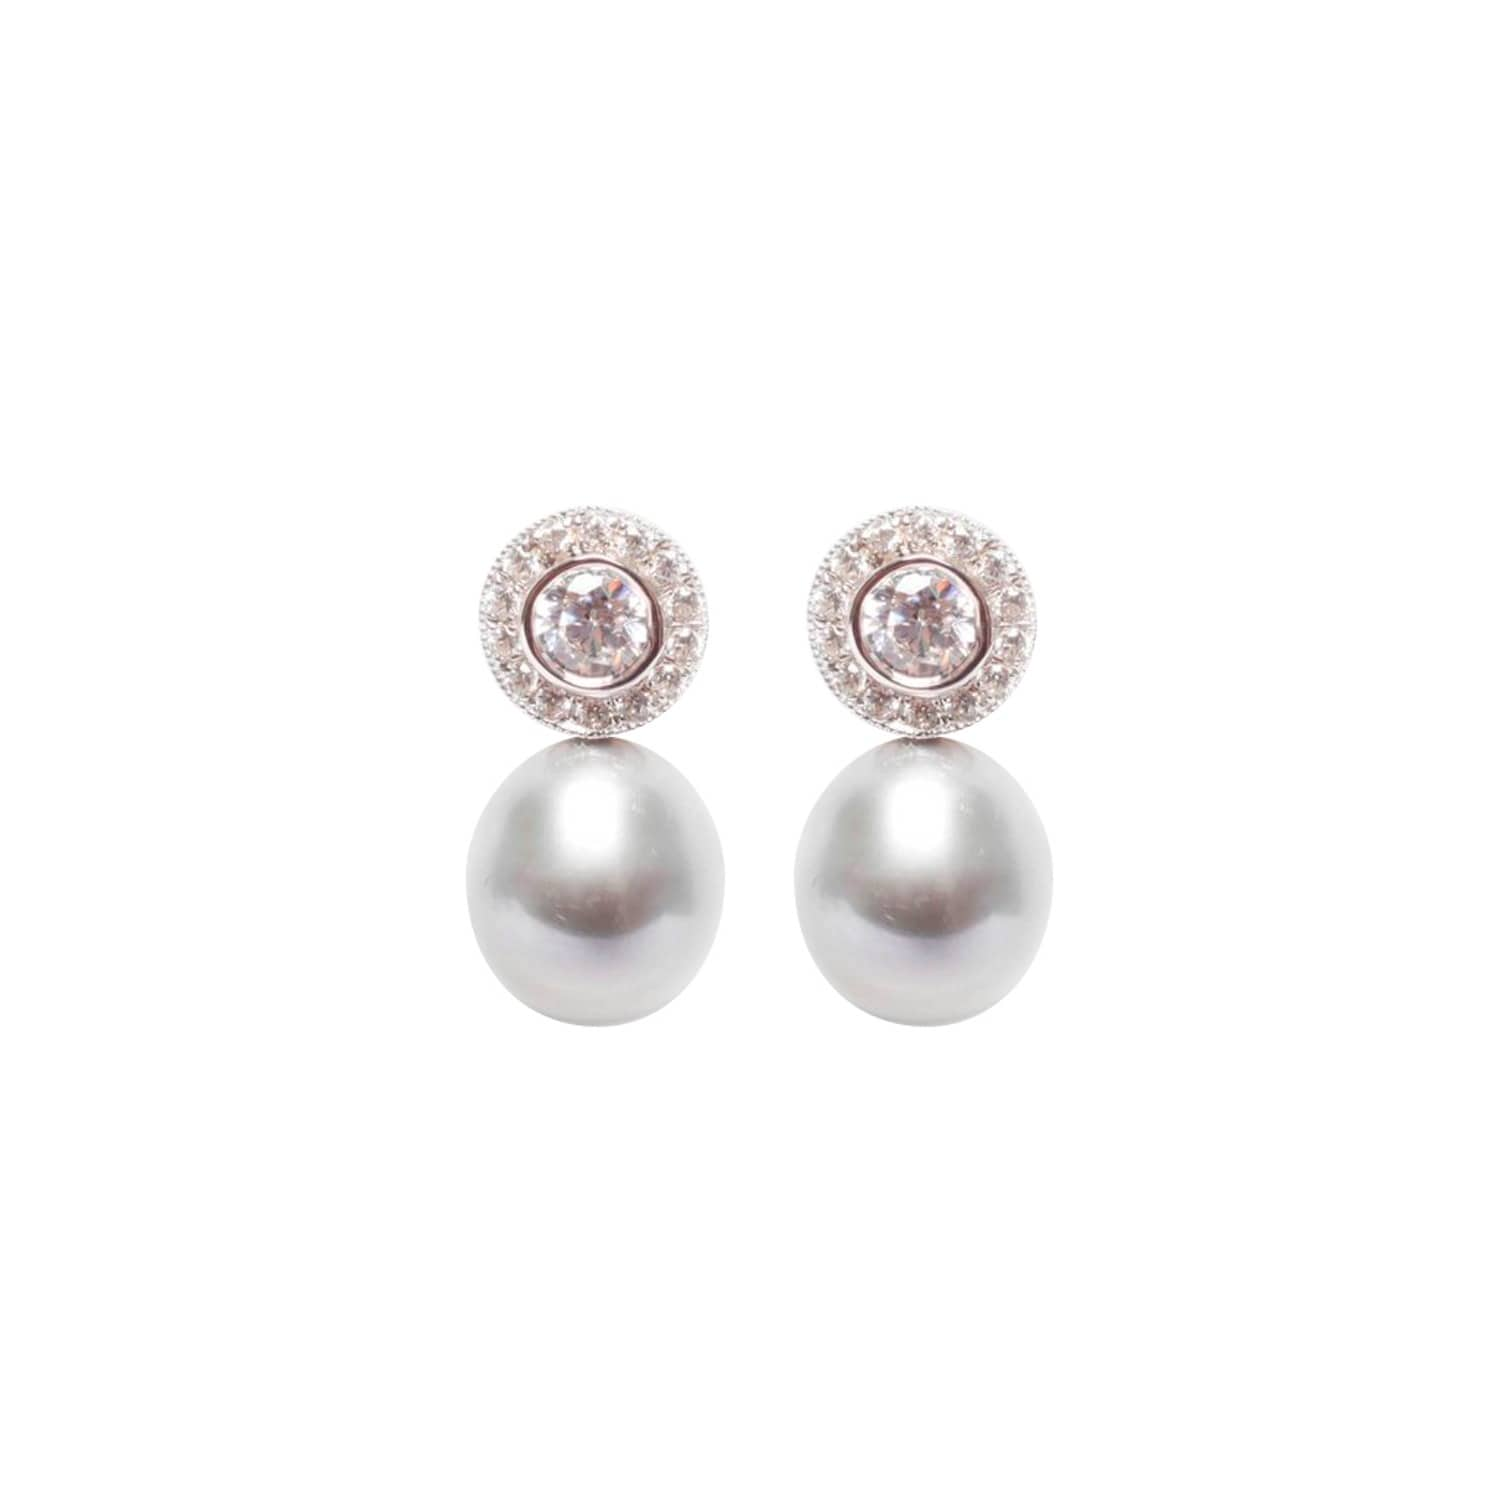 ORA Pearls Sterling Silver Halo Black Pearl Earrings Uqf54Ohj